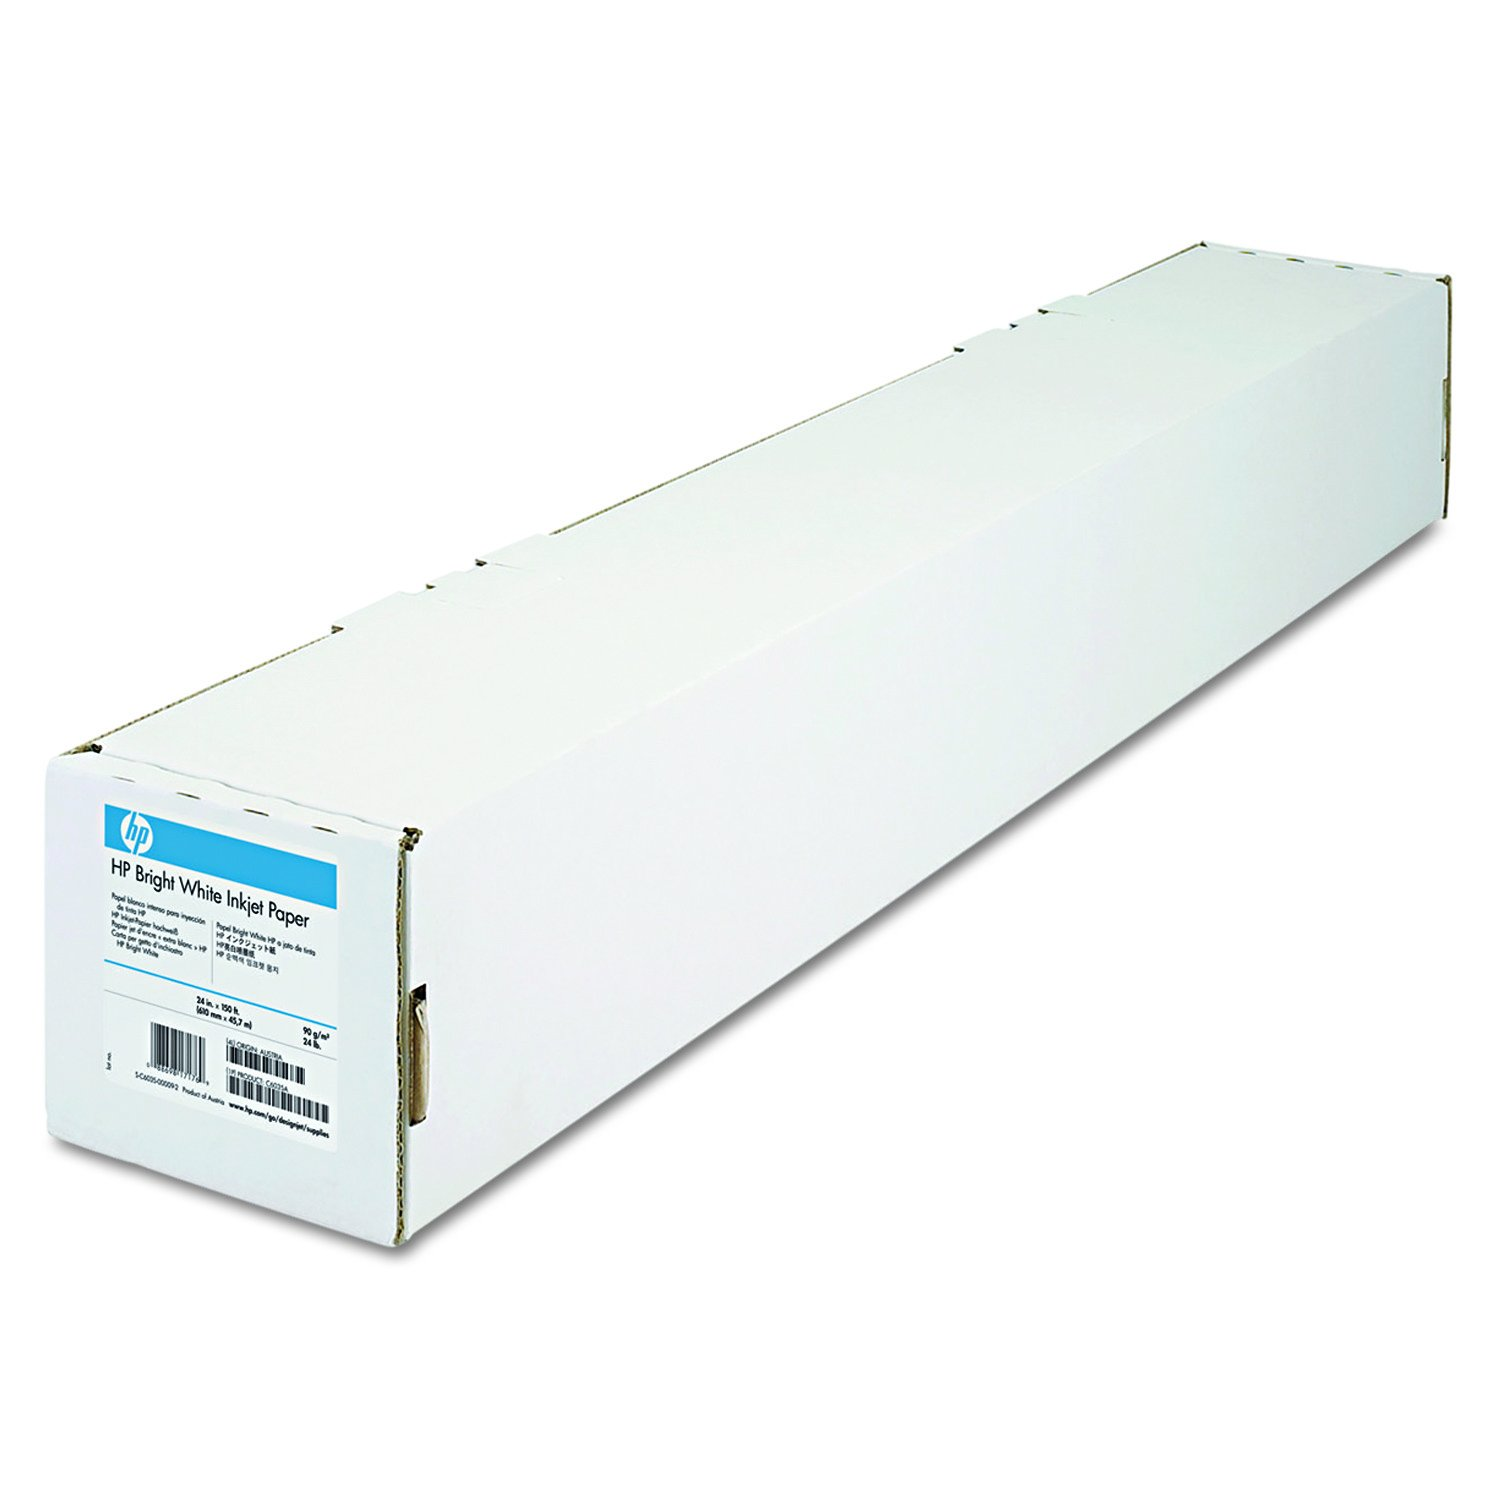 HP C1860A - Papel para plotter: Amazon.es: Oficina y papelería